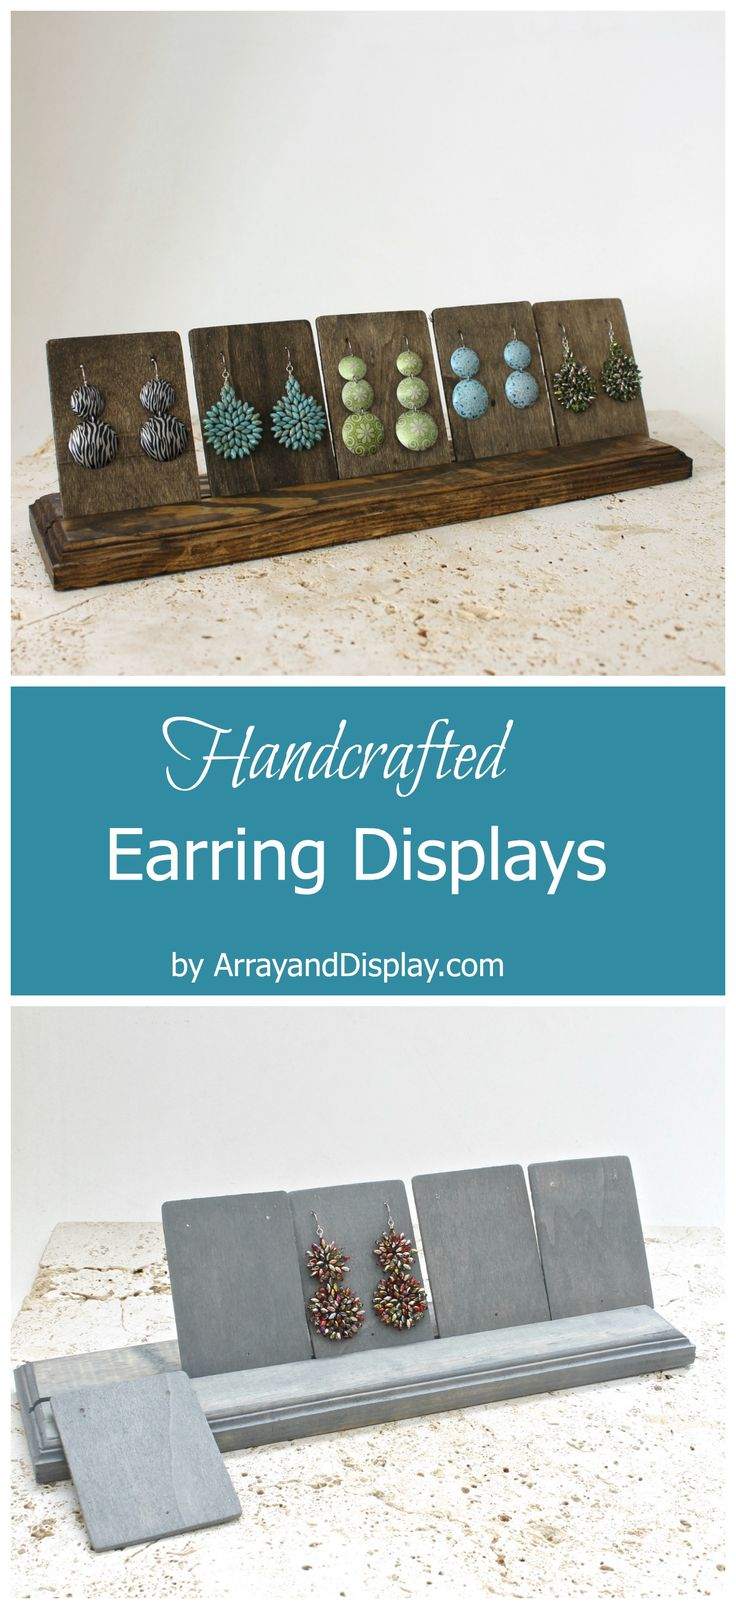 Handcrafted jewelry displays made of locally sourced new and reclaimed wood. Handcrafted in the USA by ArrayandDisplay.com. Earring displays, earrings stands, booth displays, boutique displays, craft market displays.